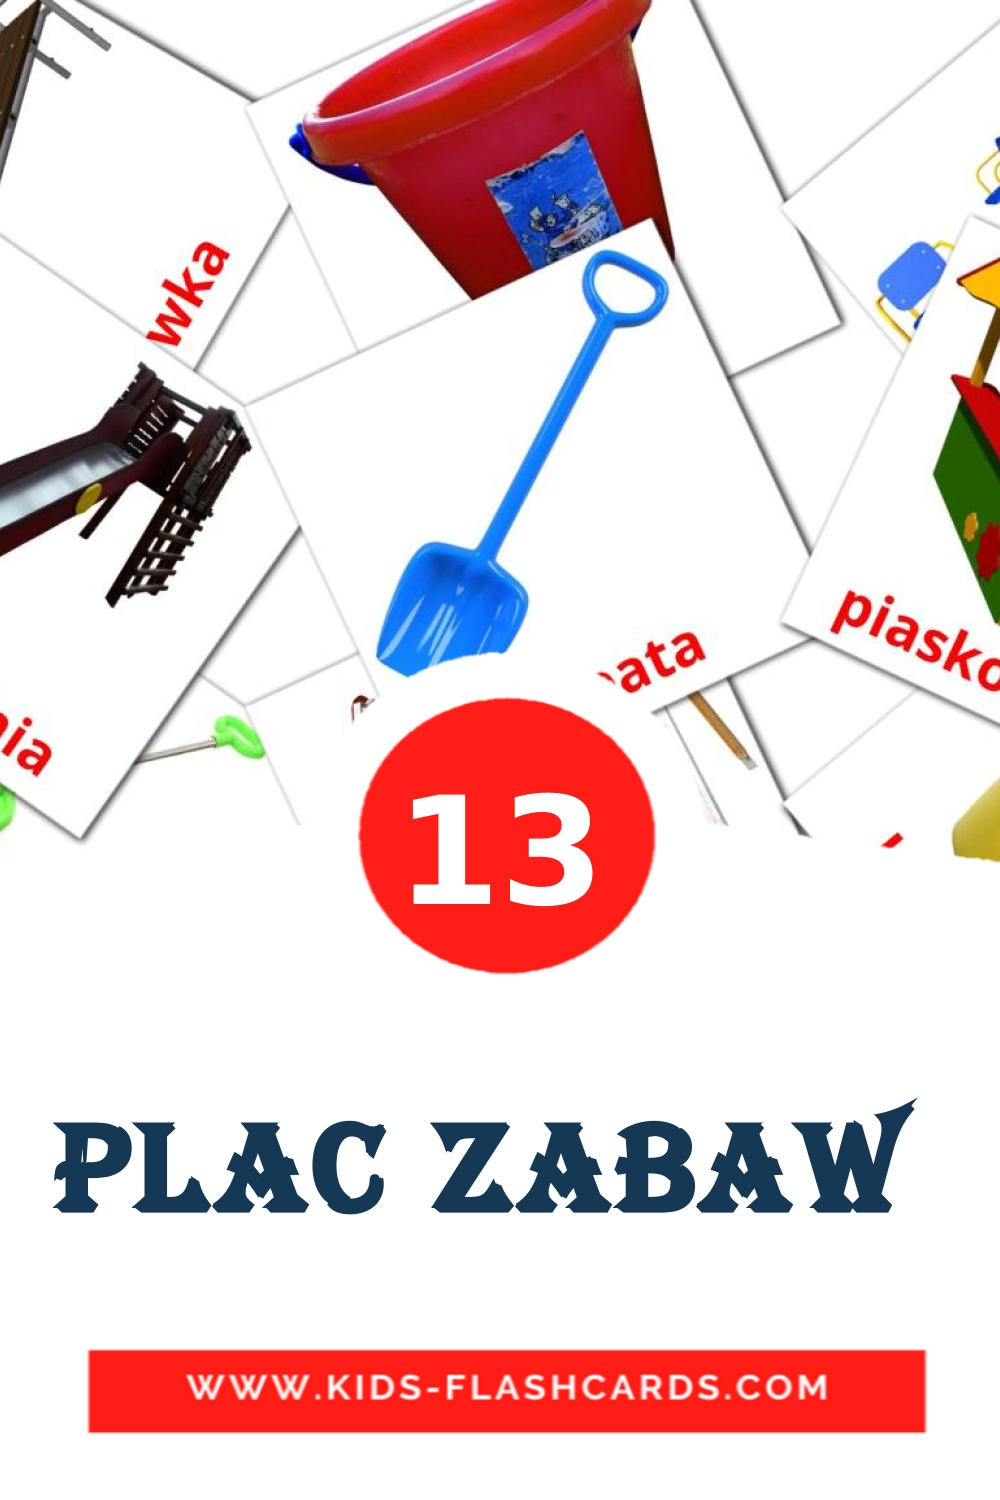 13 Plac zabaw  Picture Cards for Kindergarden in polish